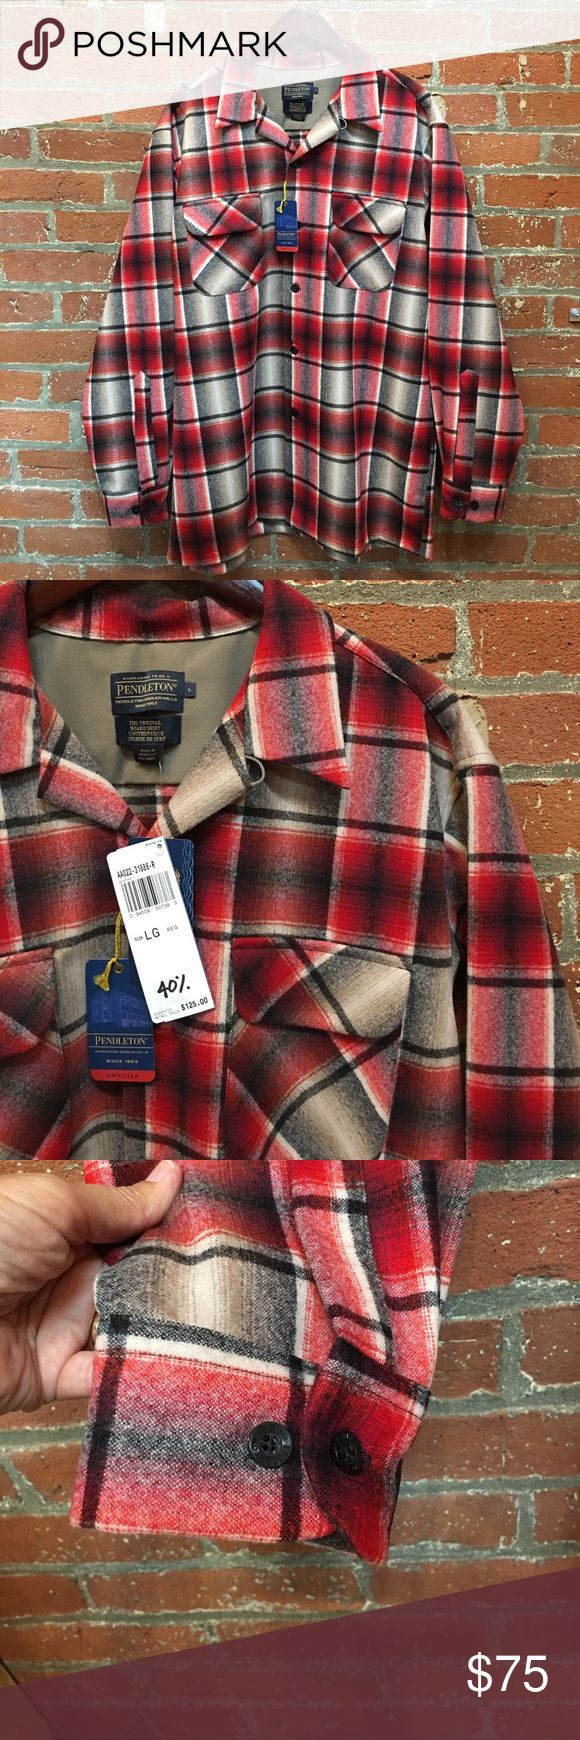 NWT Original Pendleton Board Shirt NWT original Penguin board shirt medium weight 100% virgin wool plain weave. Pendleton Shirts Casual Button Down Shirts